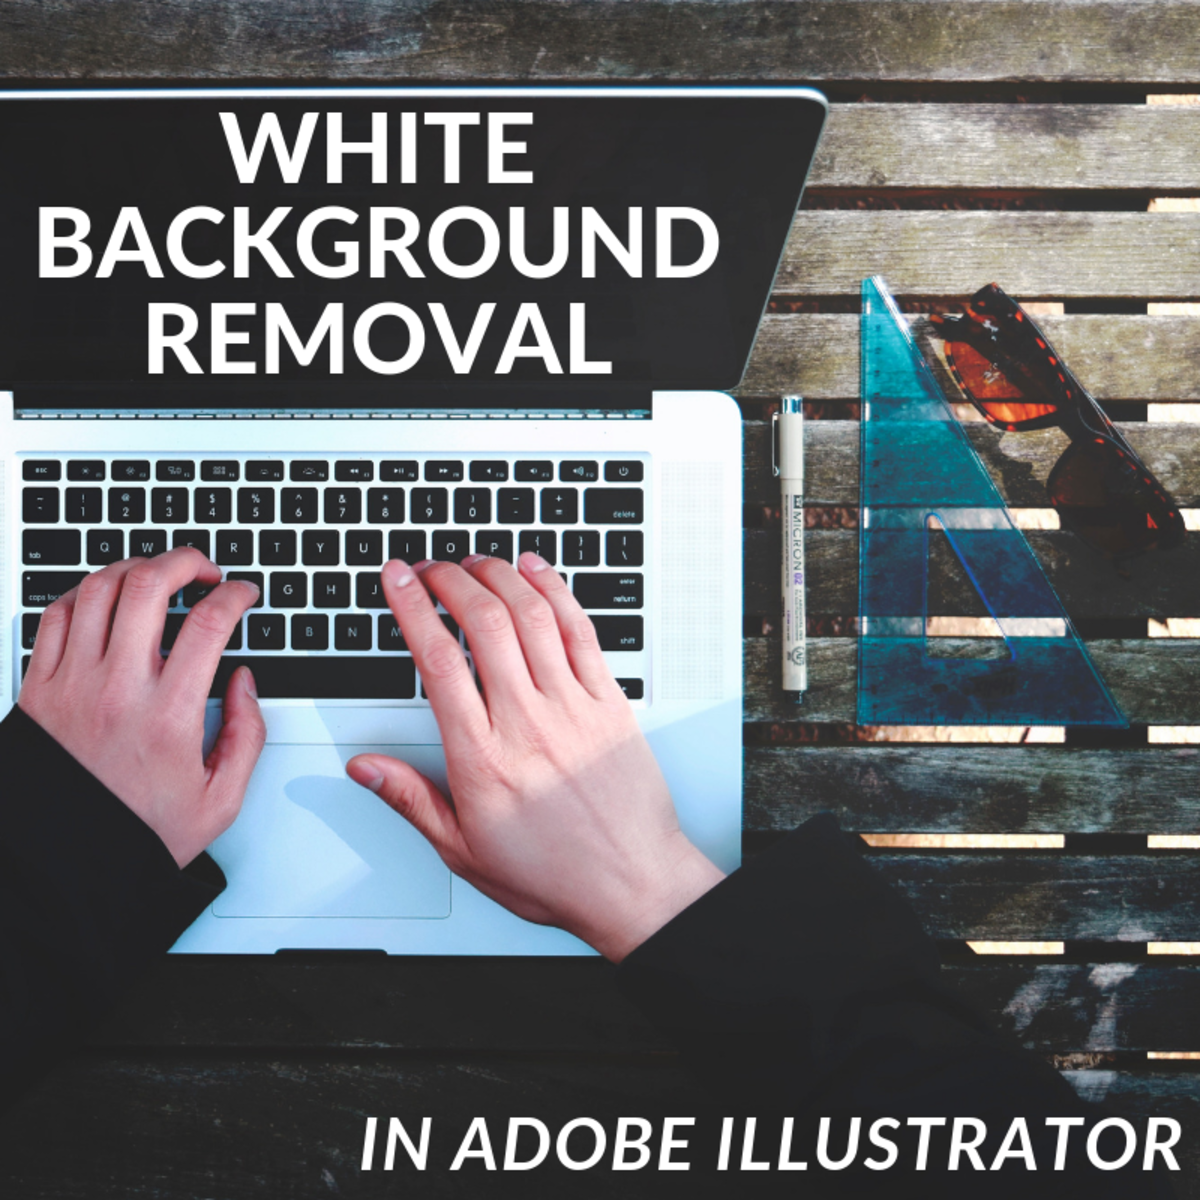 Images with white backgrounds don't incorporate well into presentations, documents, or other media. Learn how to remove the white background of a .jpeg image using the tools in Adobe Illustrator.